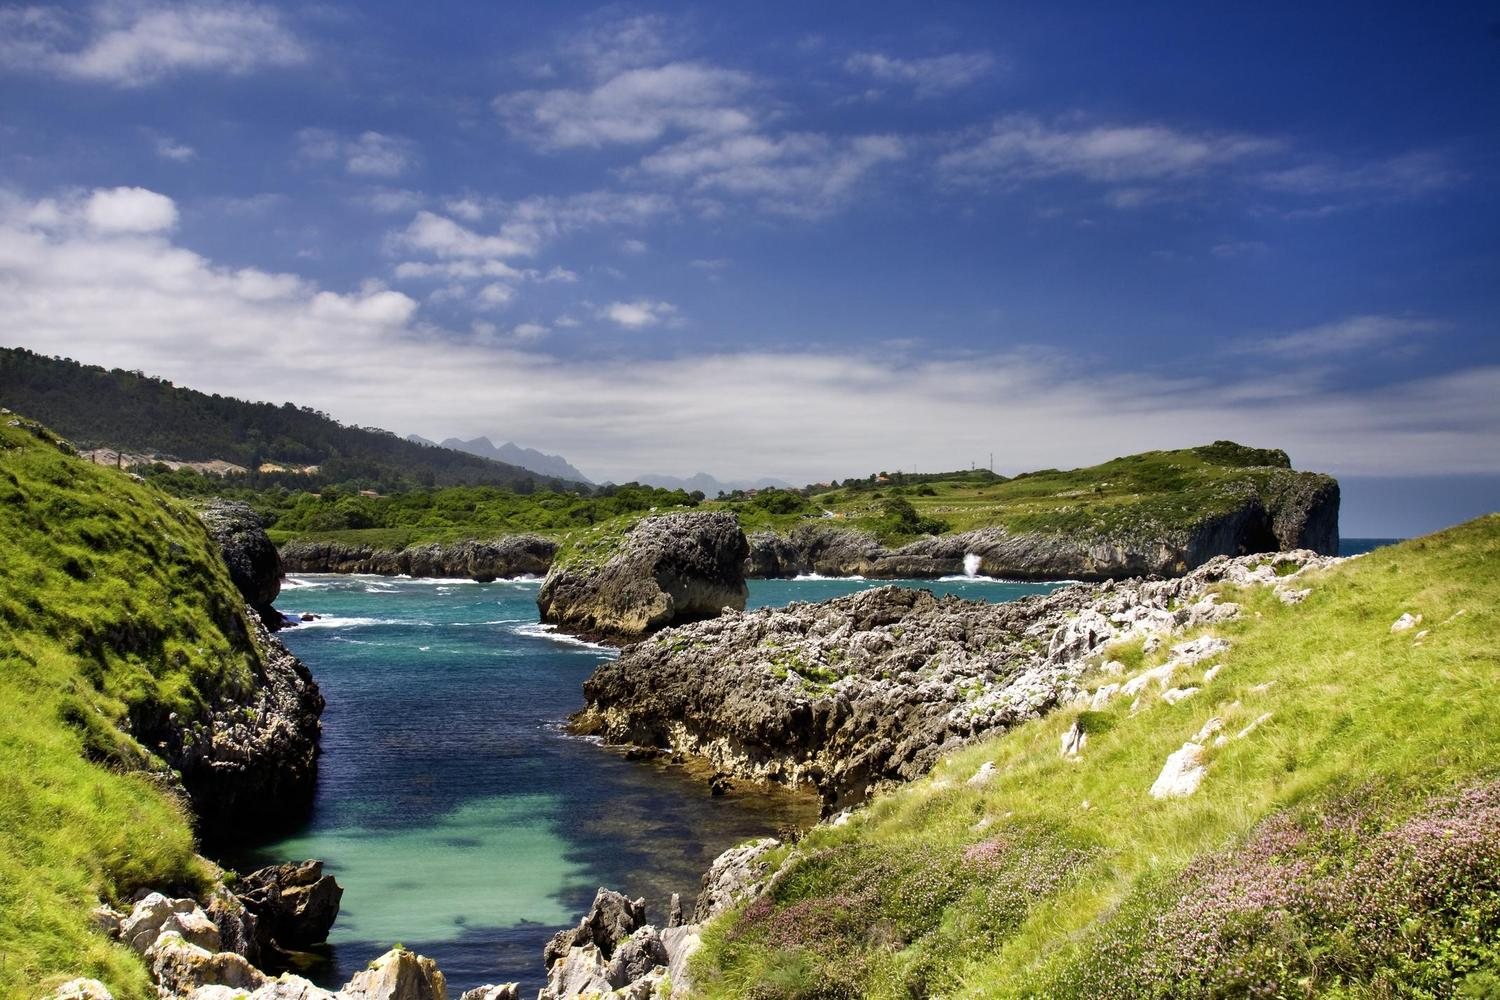 Stunning coastline within striking distance of the Picos de Europa